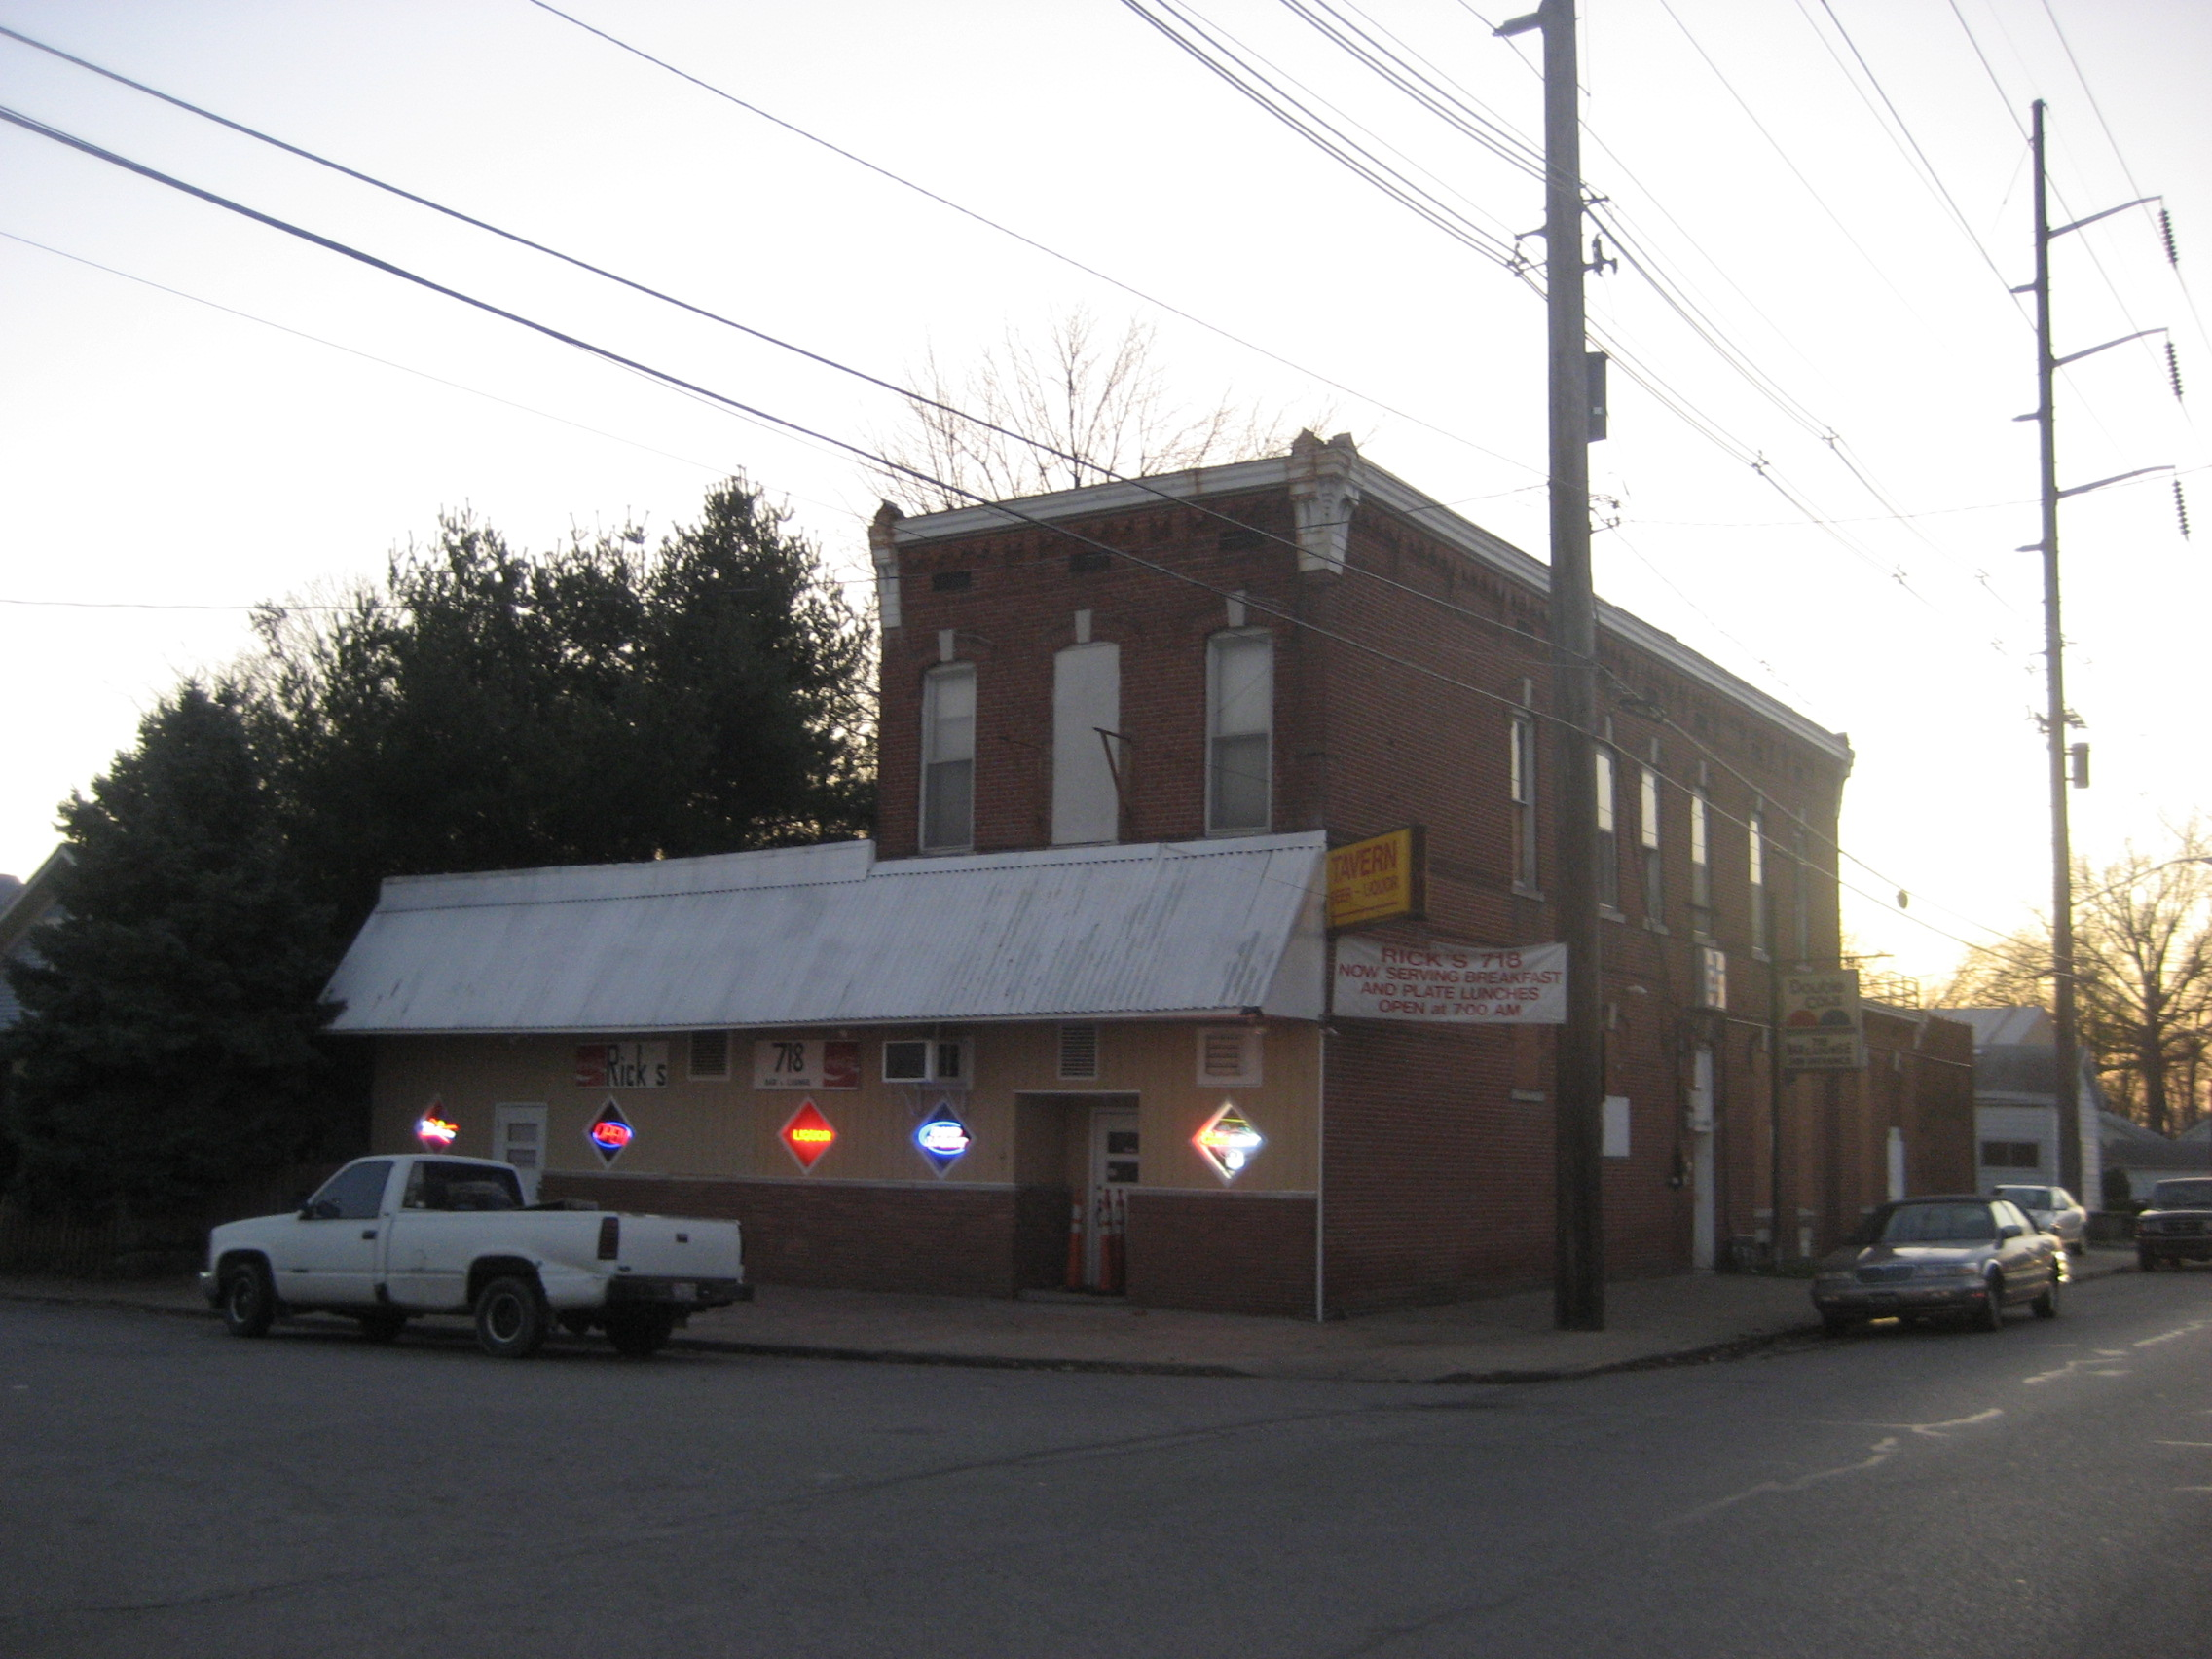 Keil Grocery and Saloon